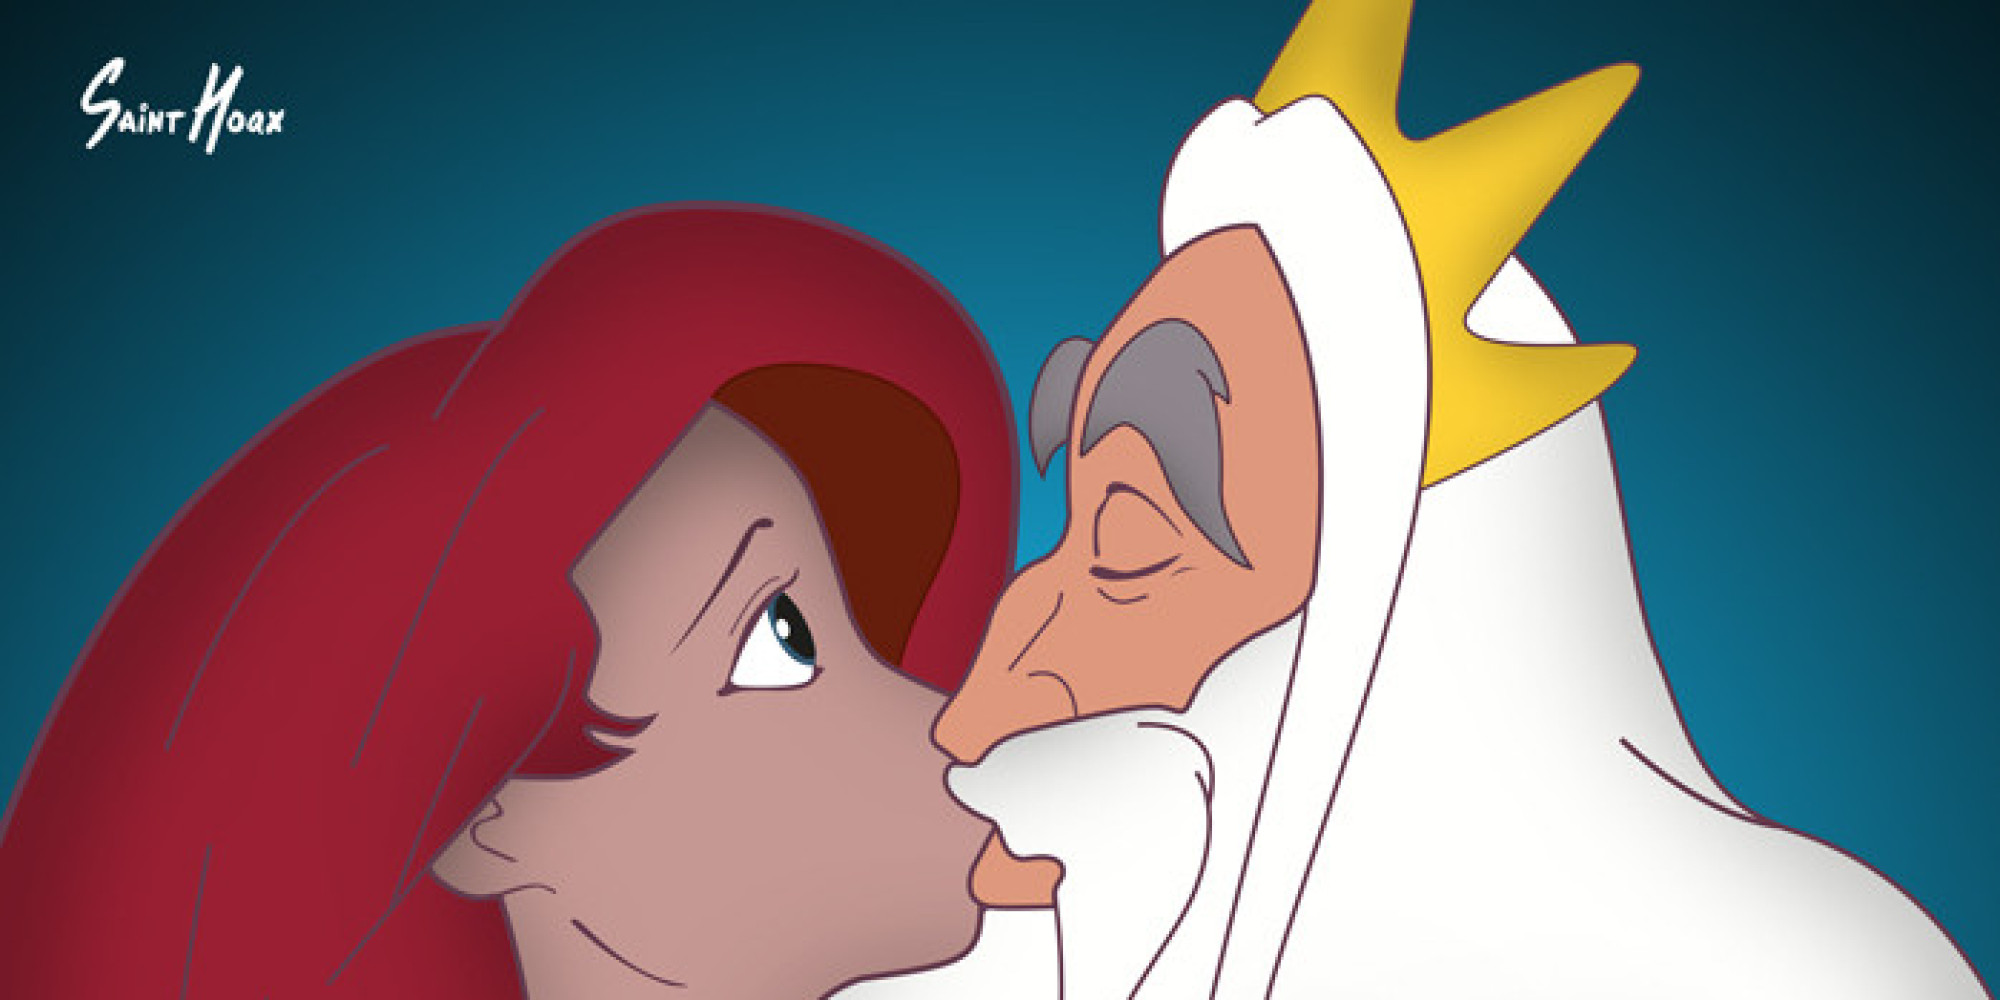 These Disturbing Posters Put Together Incest And Disney Princesses For Rape Awareness